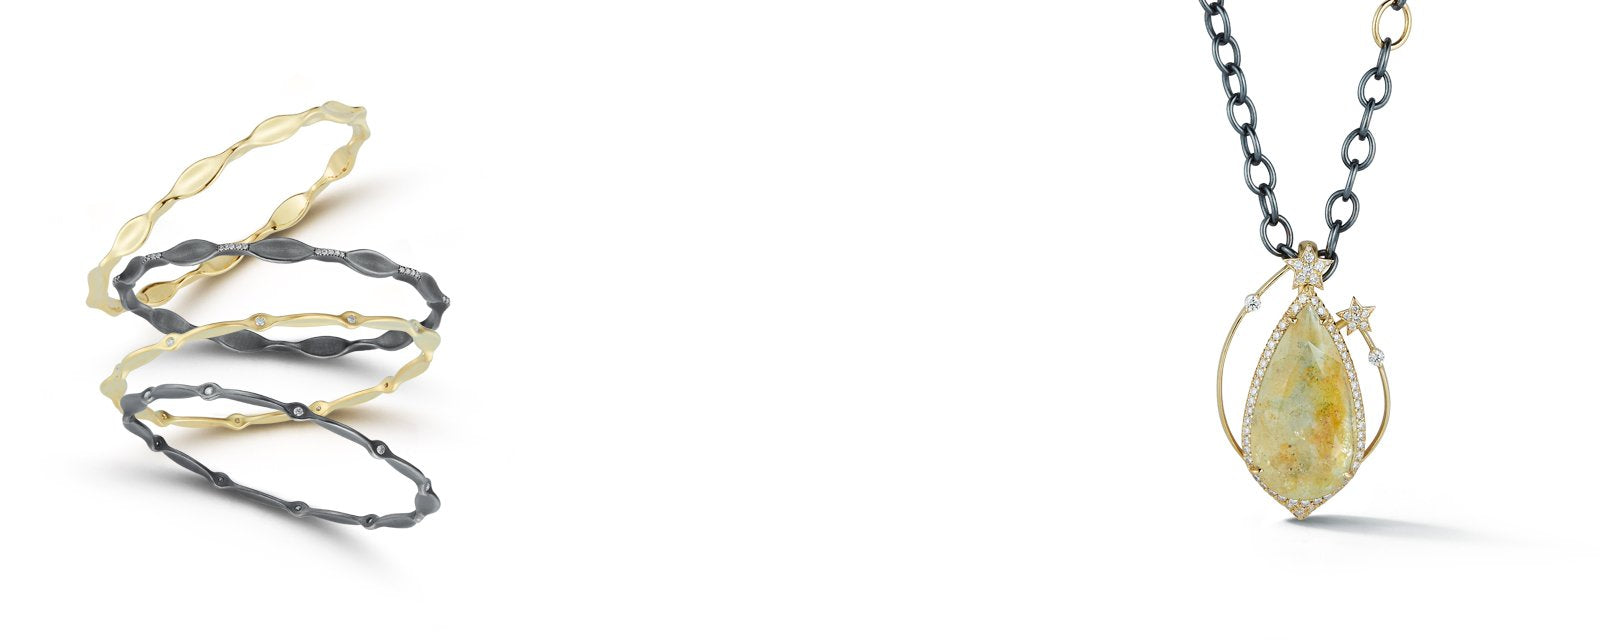 DIAMOND EXPERTISE: <br> OUR GUIDE TO BUYING <br> THE PERFECT DIAMOND